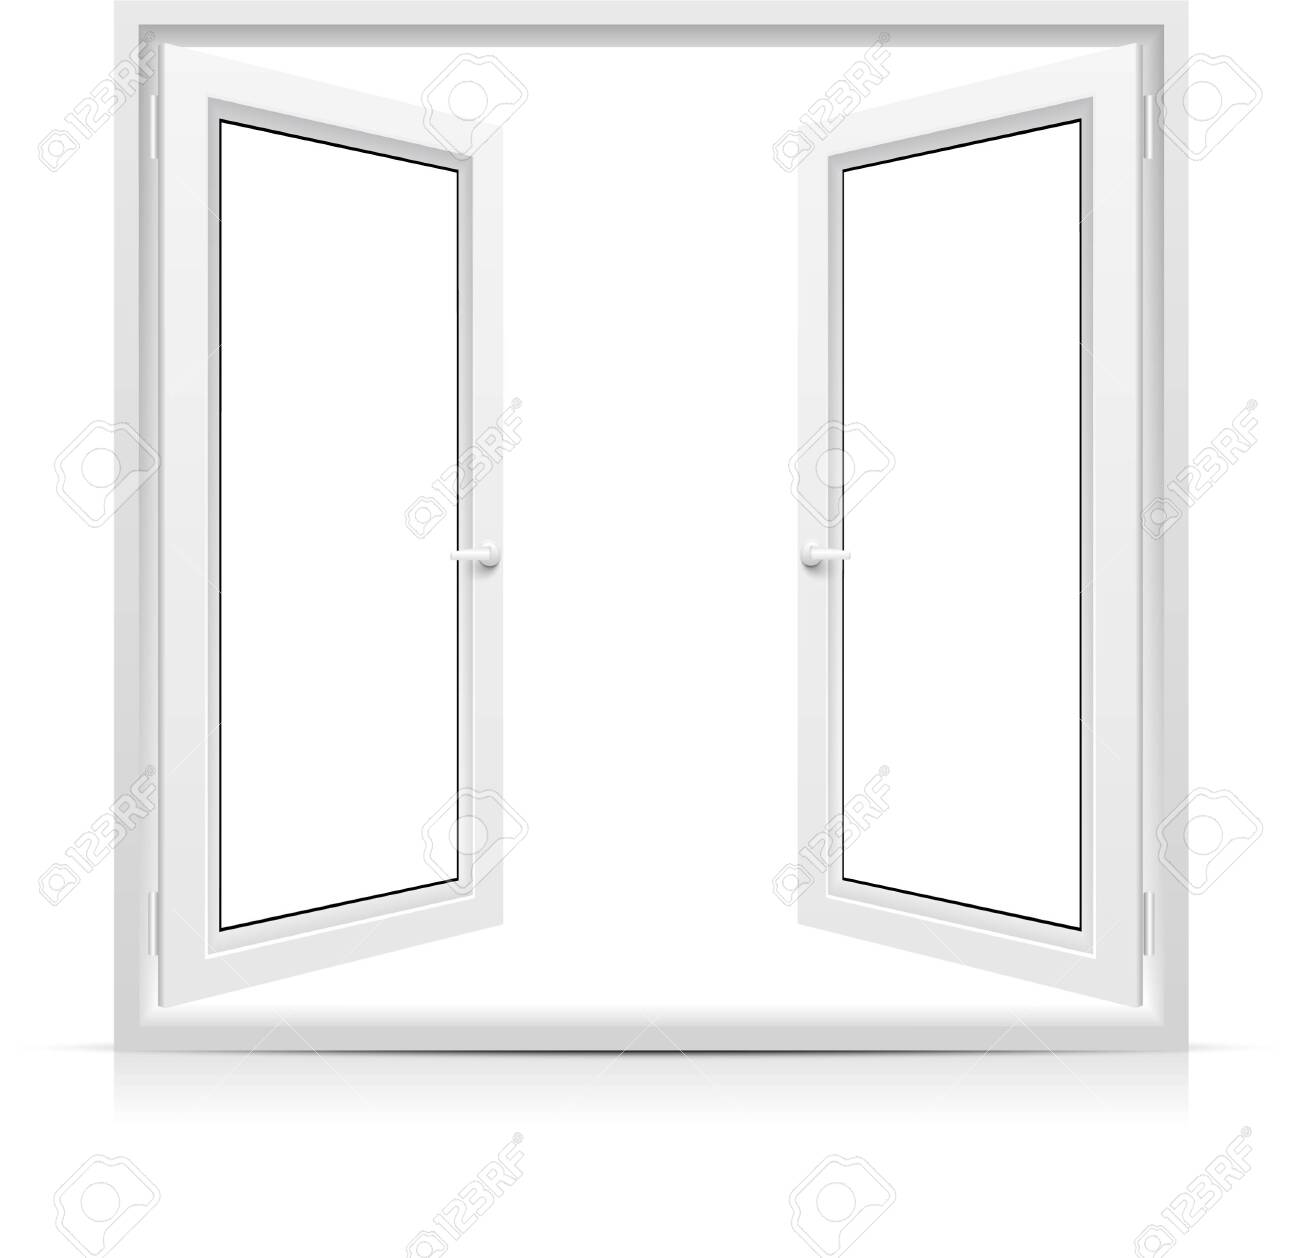 Vector opened window isolated on white background - 150586676